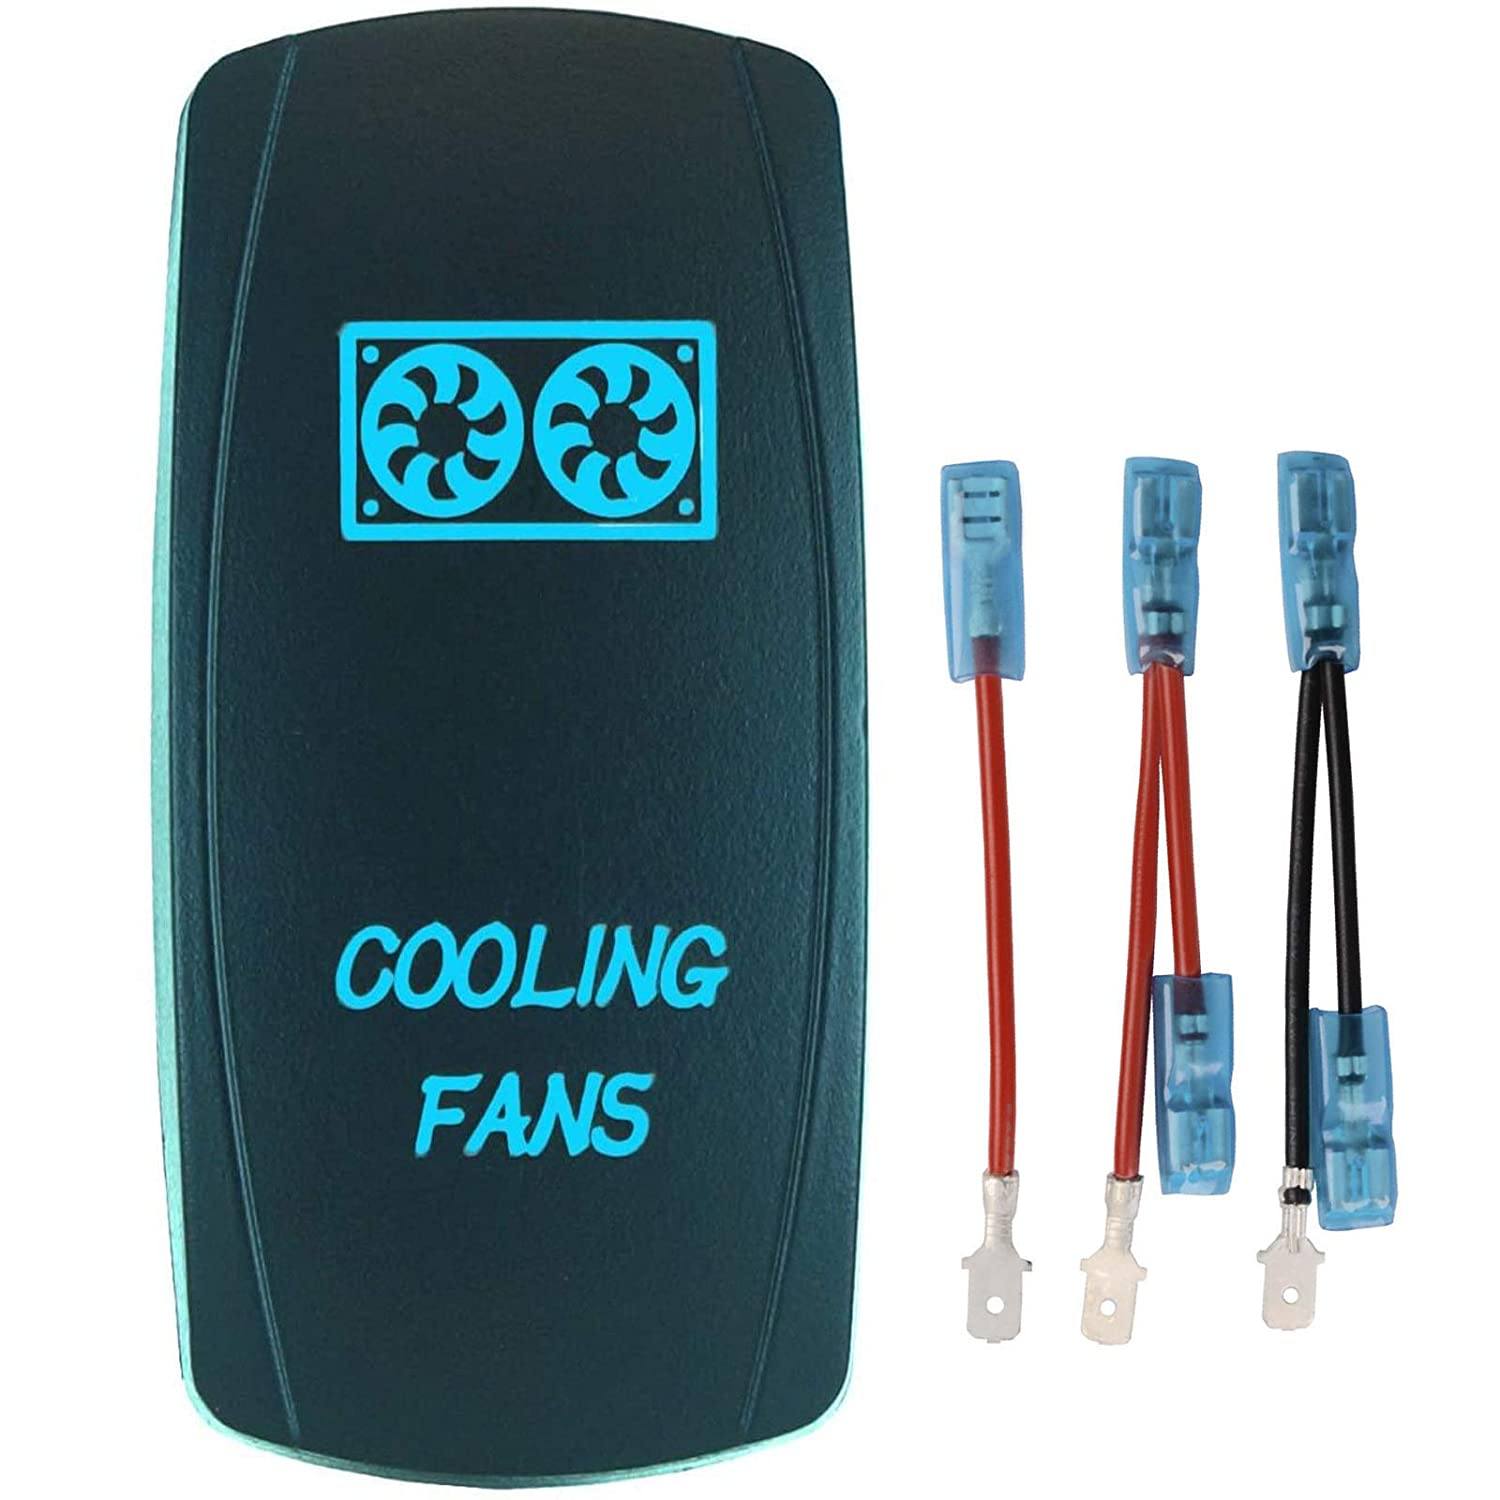 QUNQI STAR 5 pin Laser Backlit FANS Switch Cash special price Rocker 20A COOLING Fixed price for sale 12